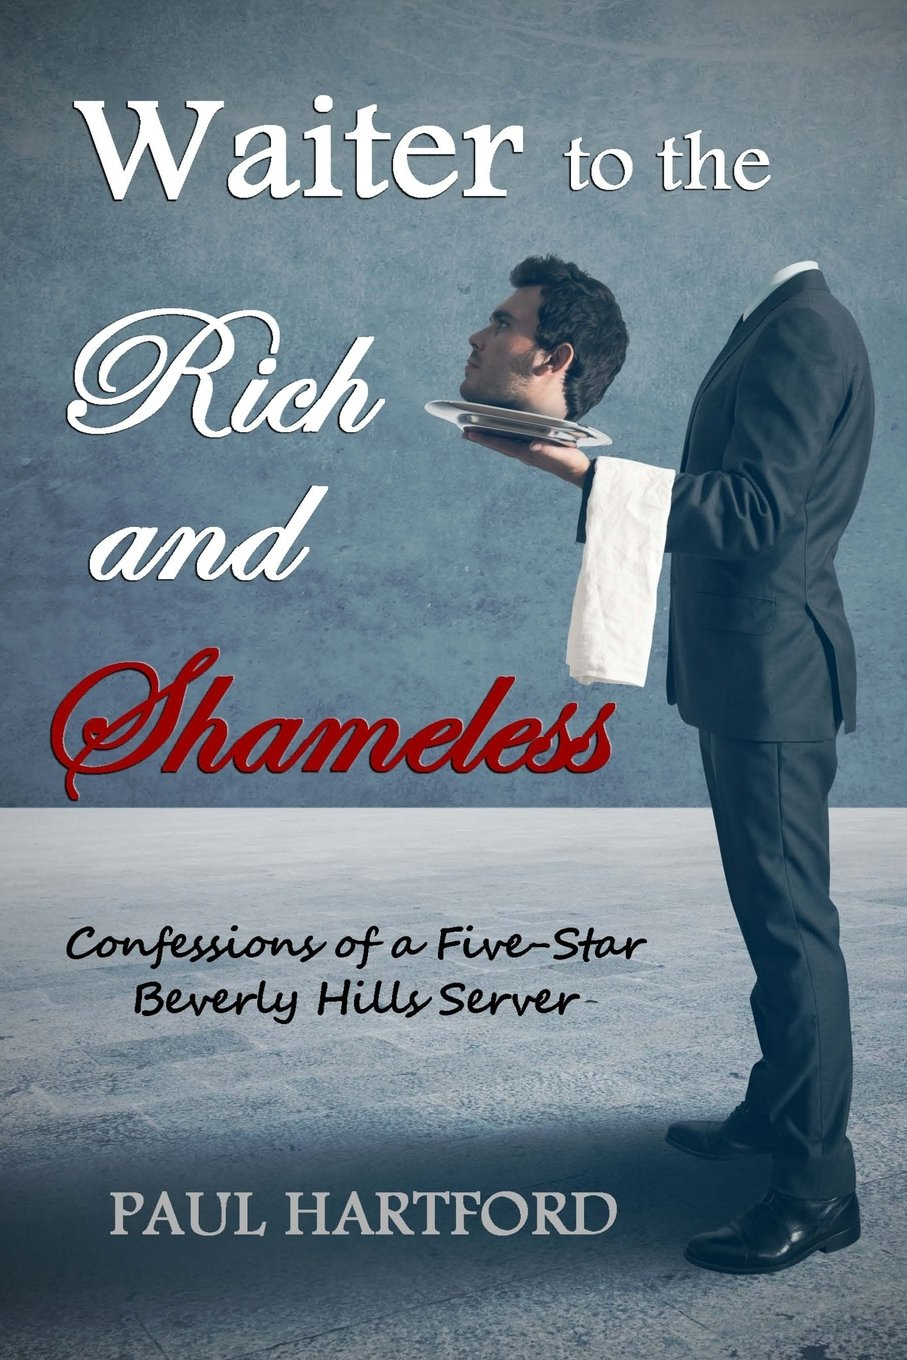 Waiter to the Rich and Shameless ISBN-13 9780692543580